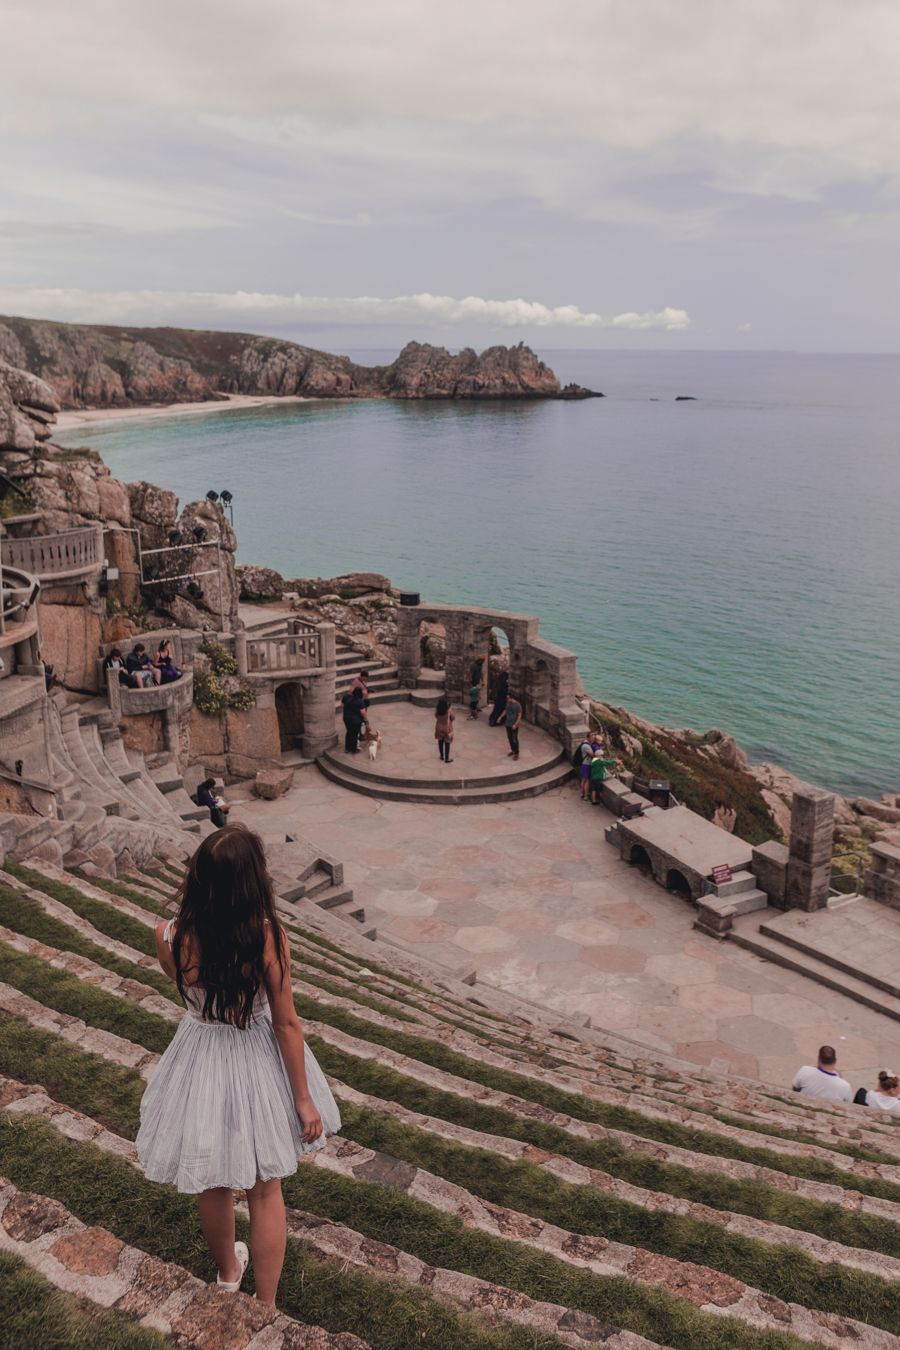 Minack Theatre and Porthchapel Beach, Cornwall Places to